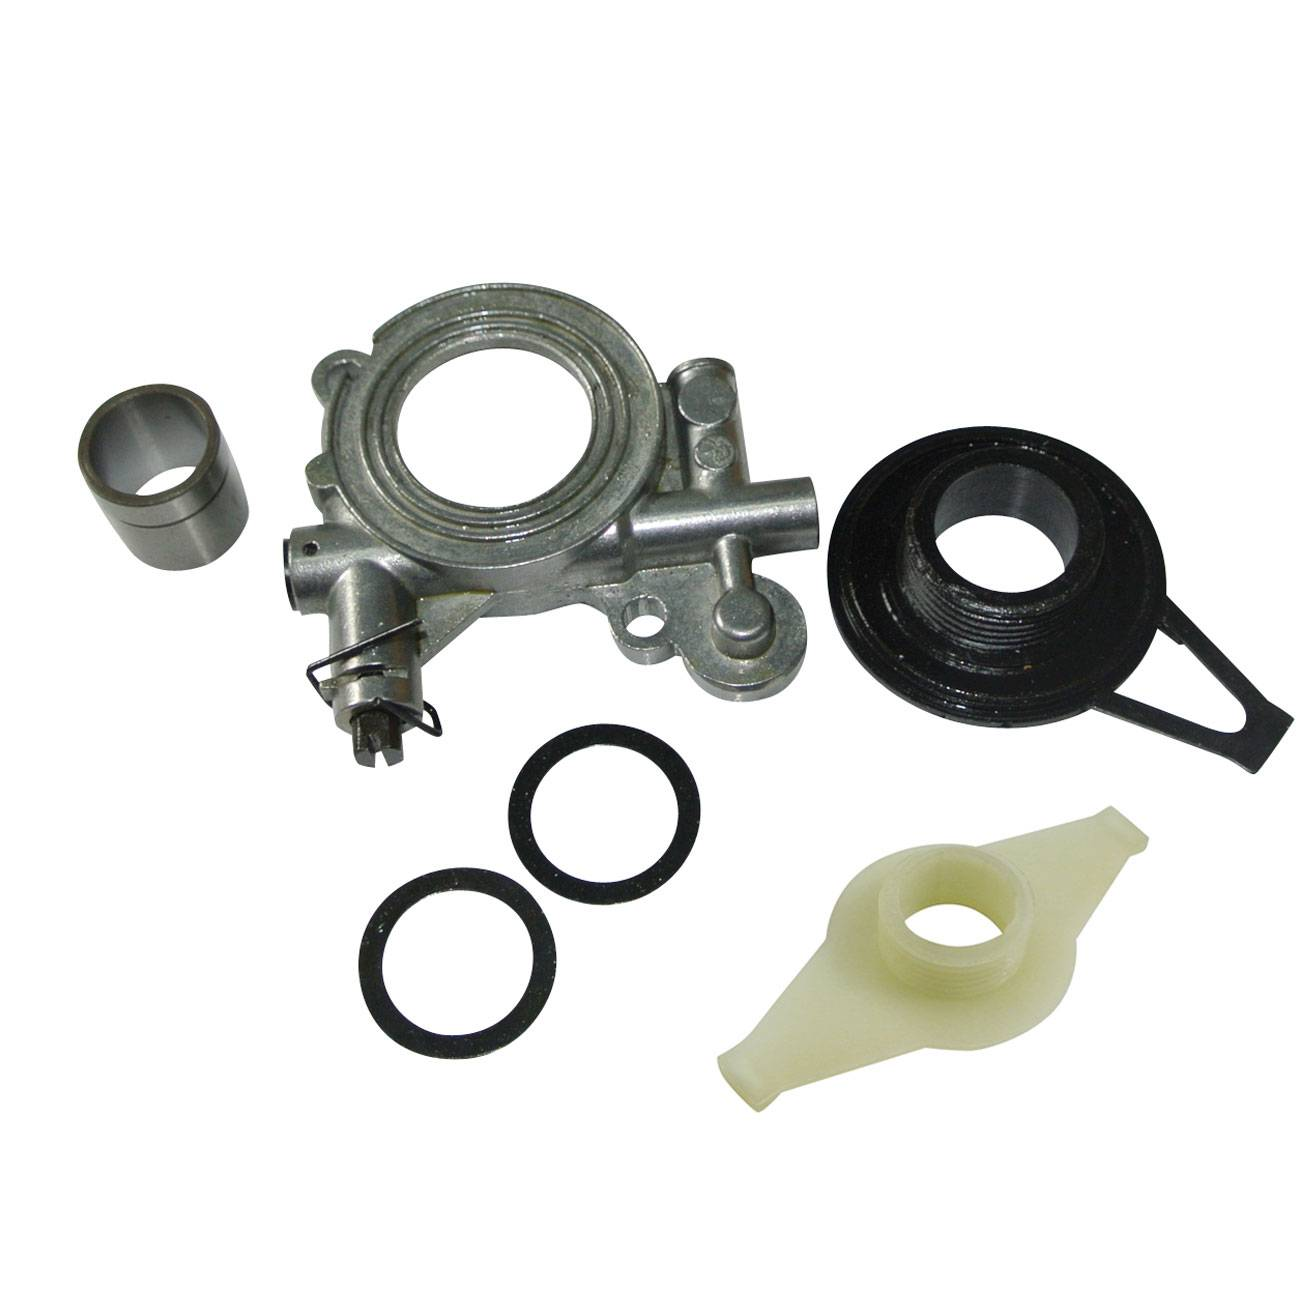 Oil Pump Kit & Worm Gear for Husqvarna Chainsaw 362 365 371 372 372XP 385 390 NEW цена